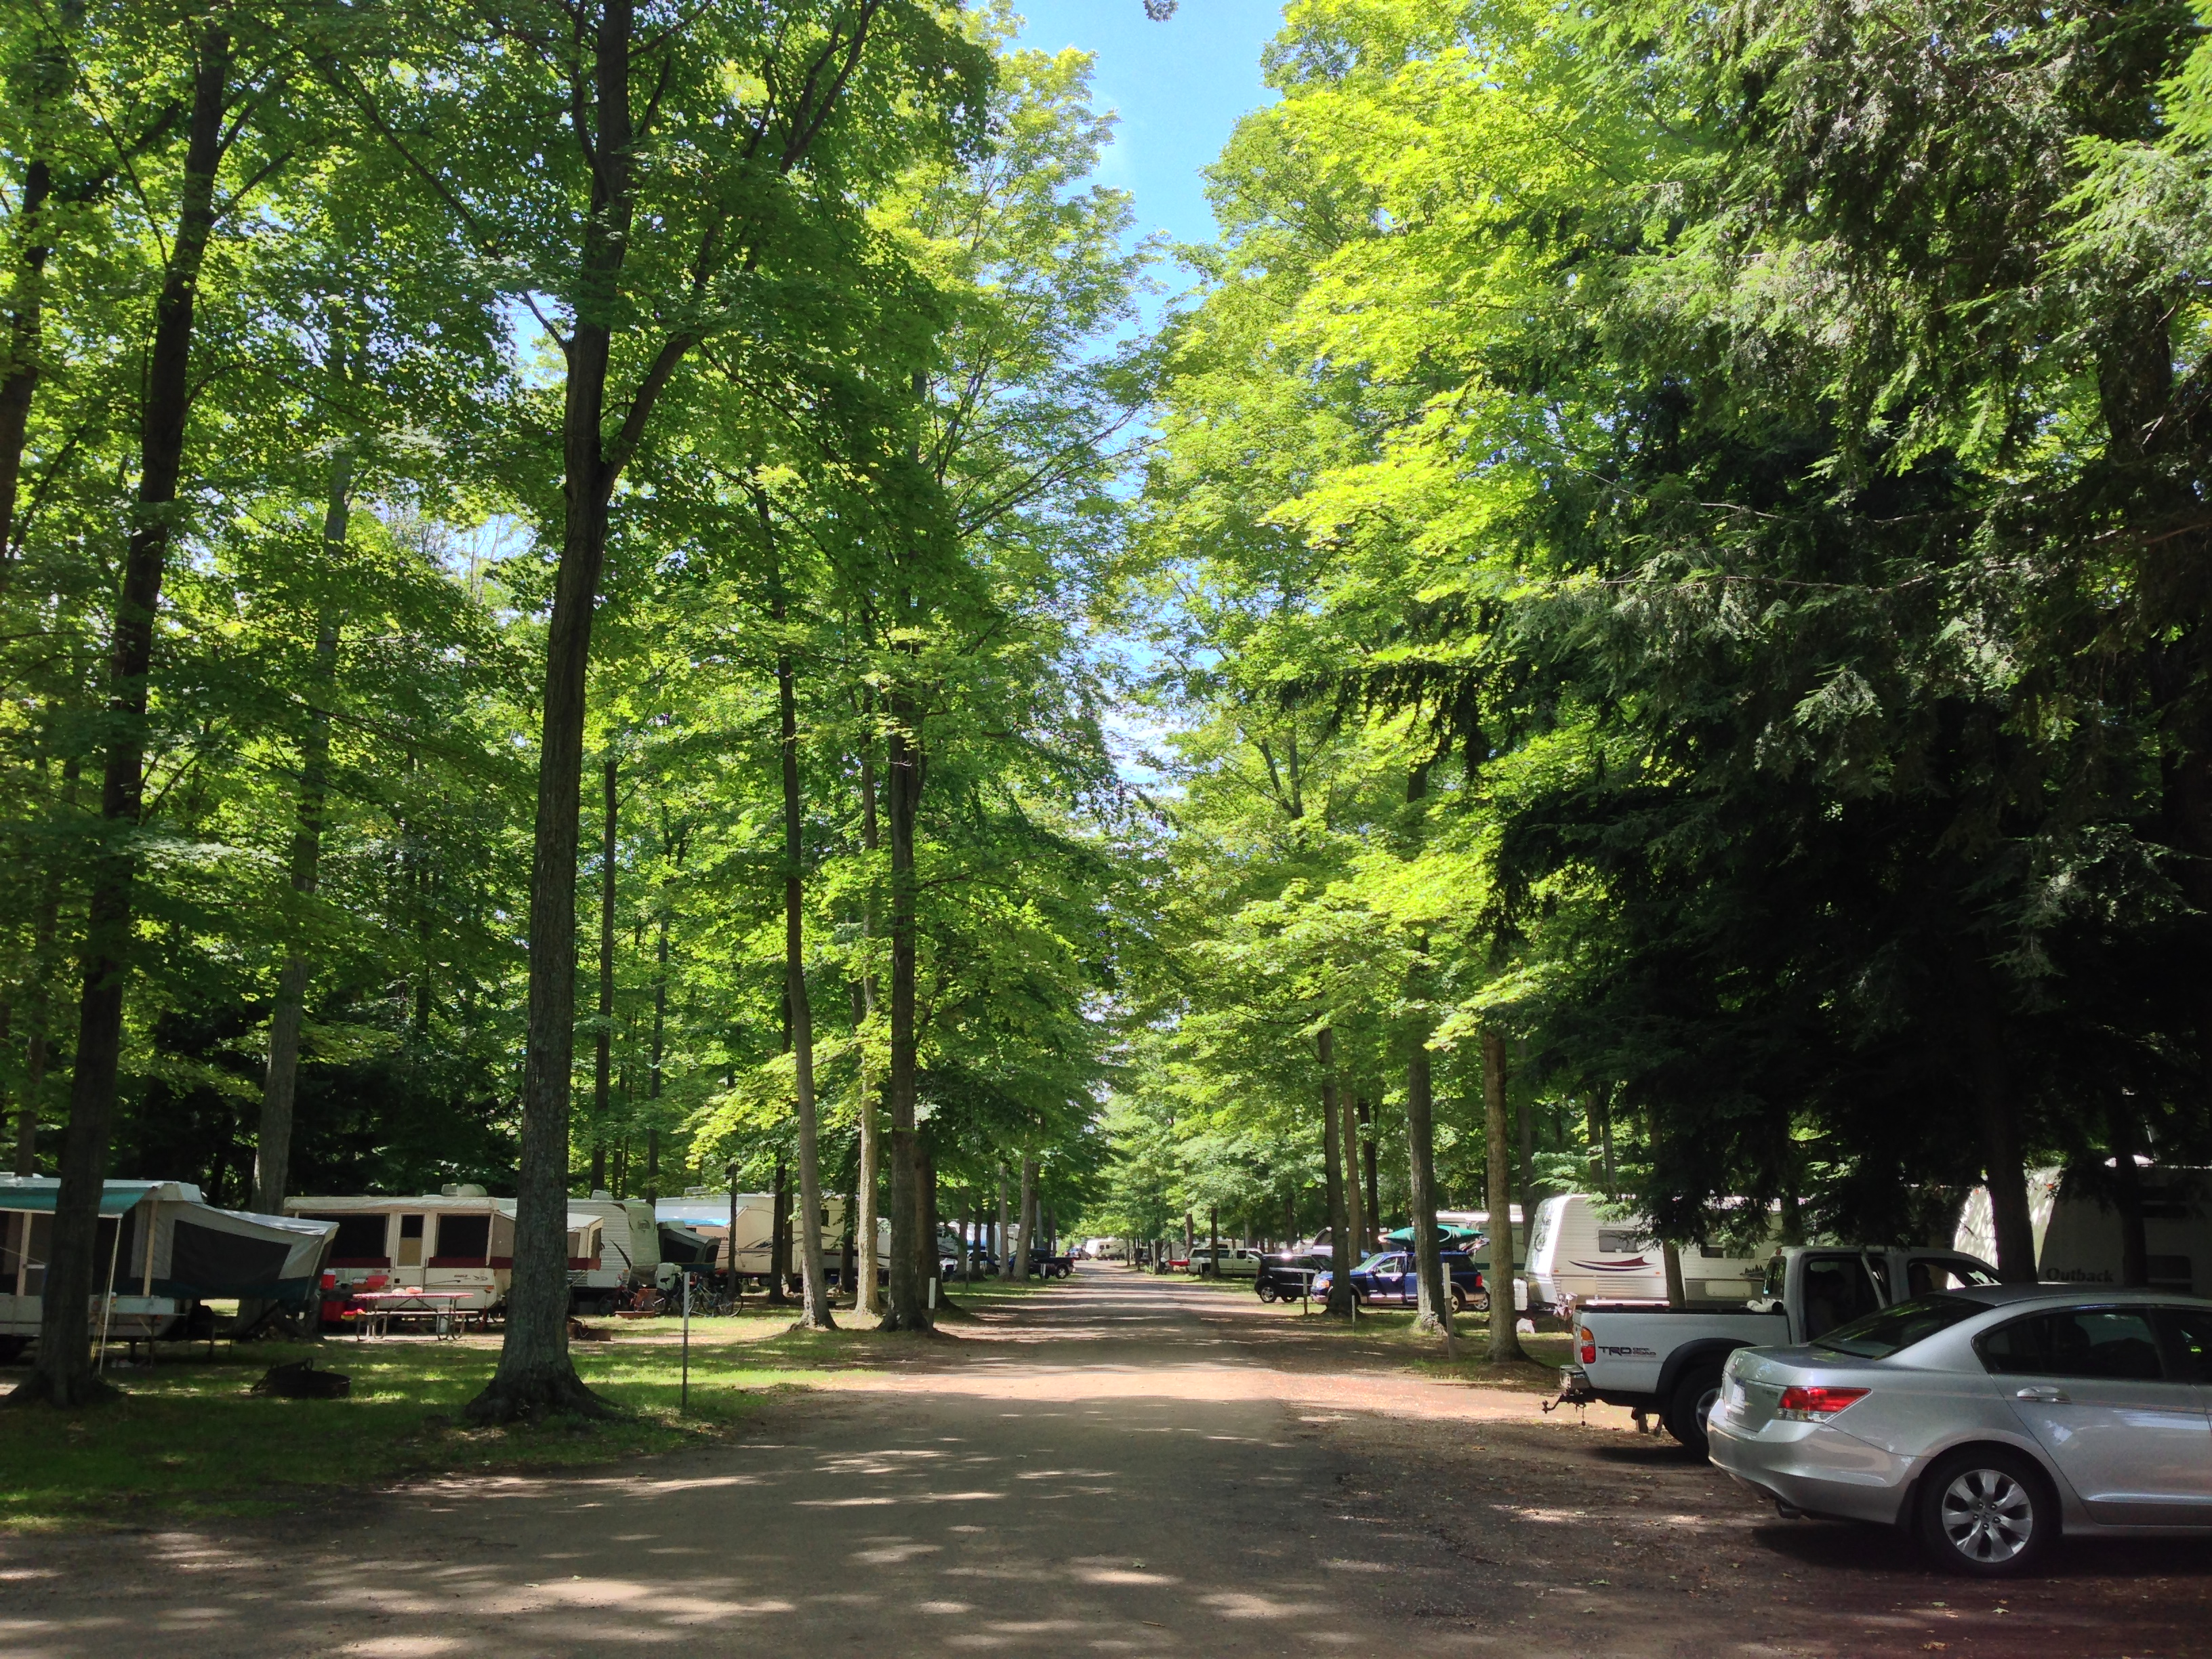 Looking West down Maple Lane in the RV Park